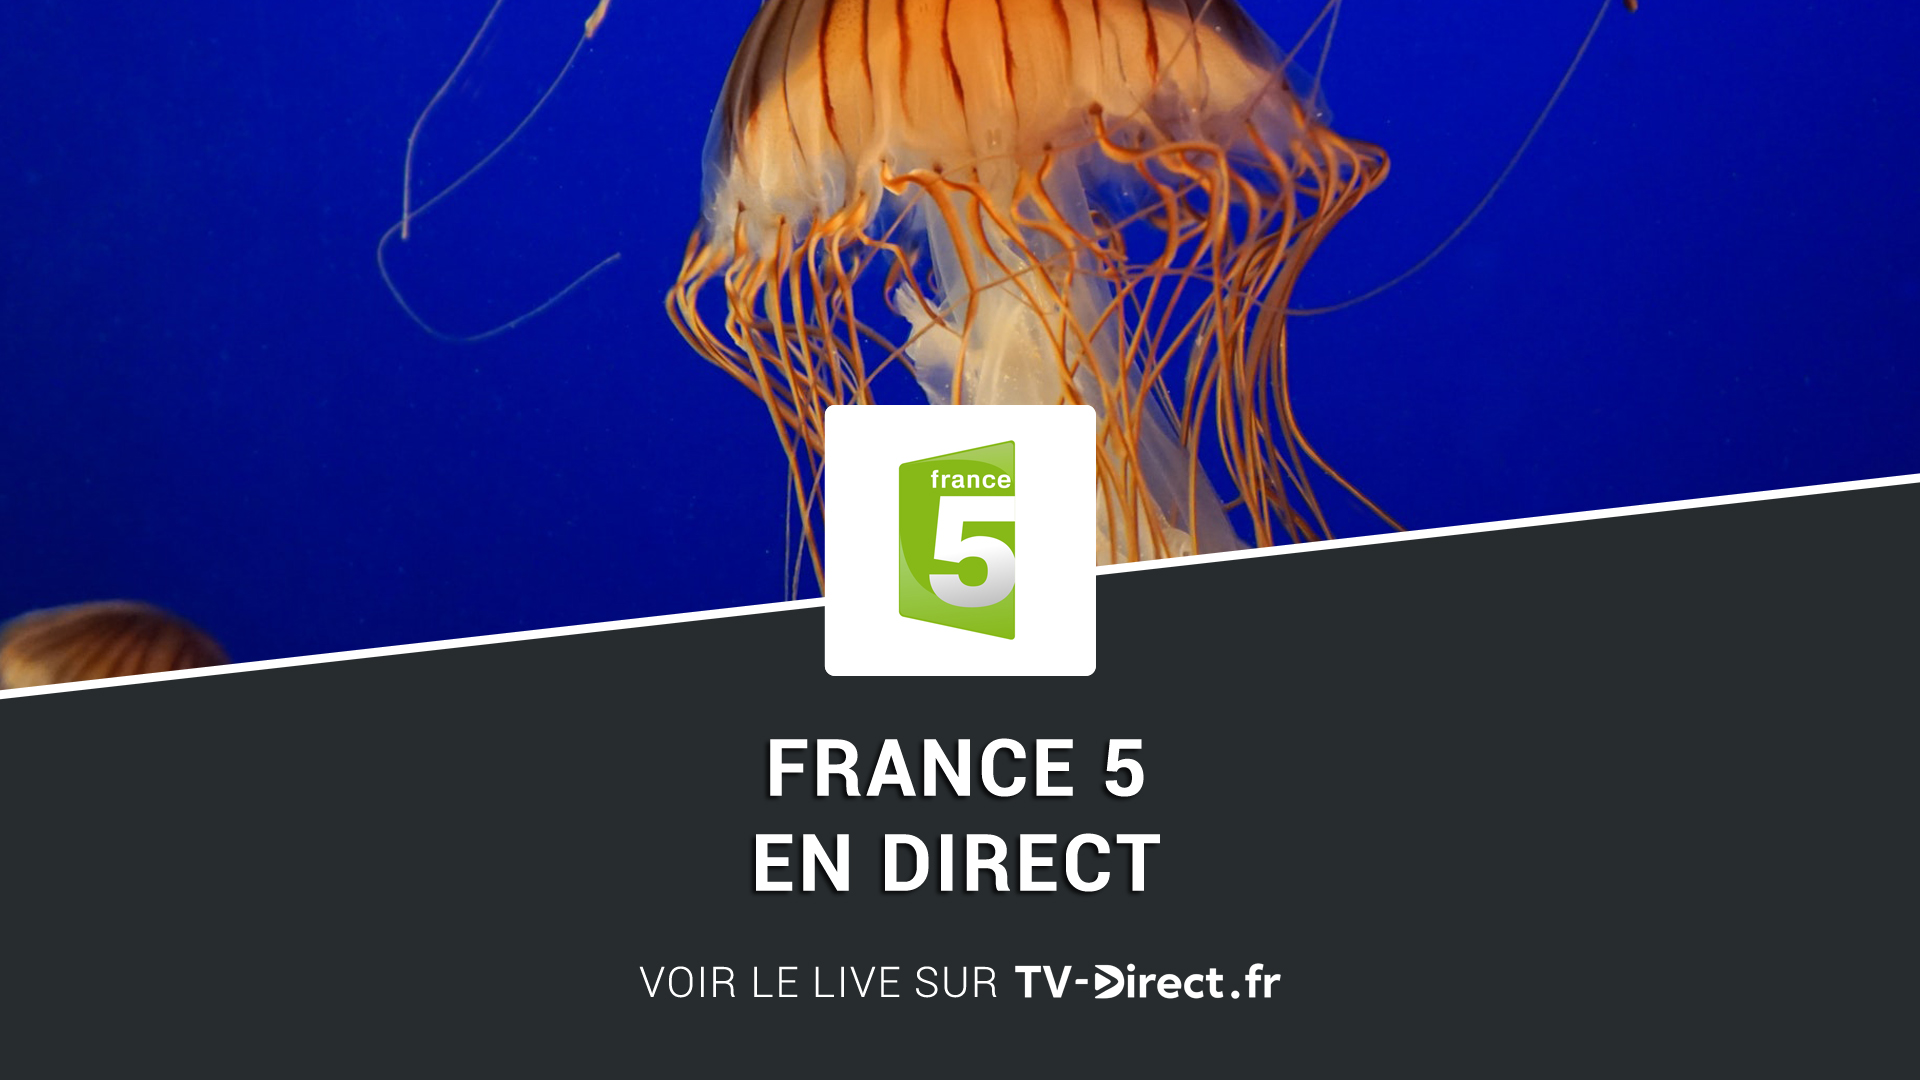 france 5 direct regarder france 5 en direct live sur internet. Black Bedroom Furniture Sets. Home Design Ideas